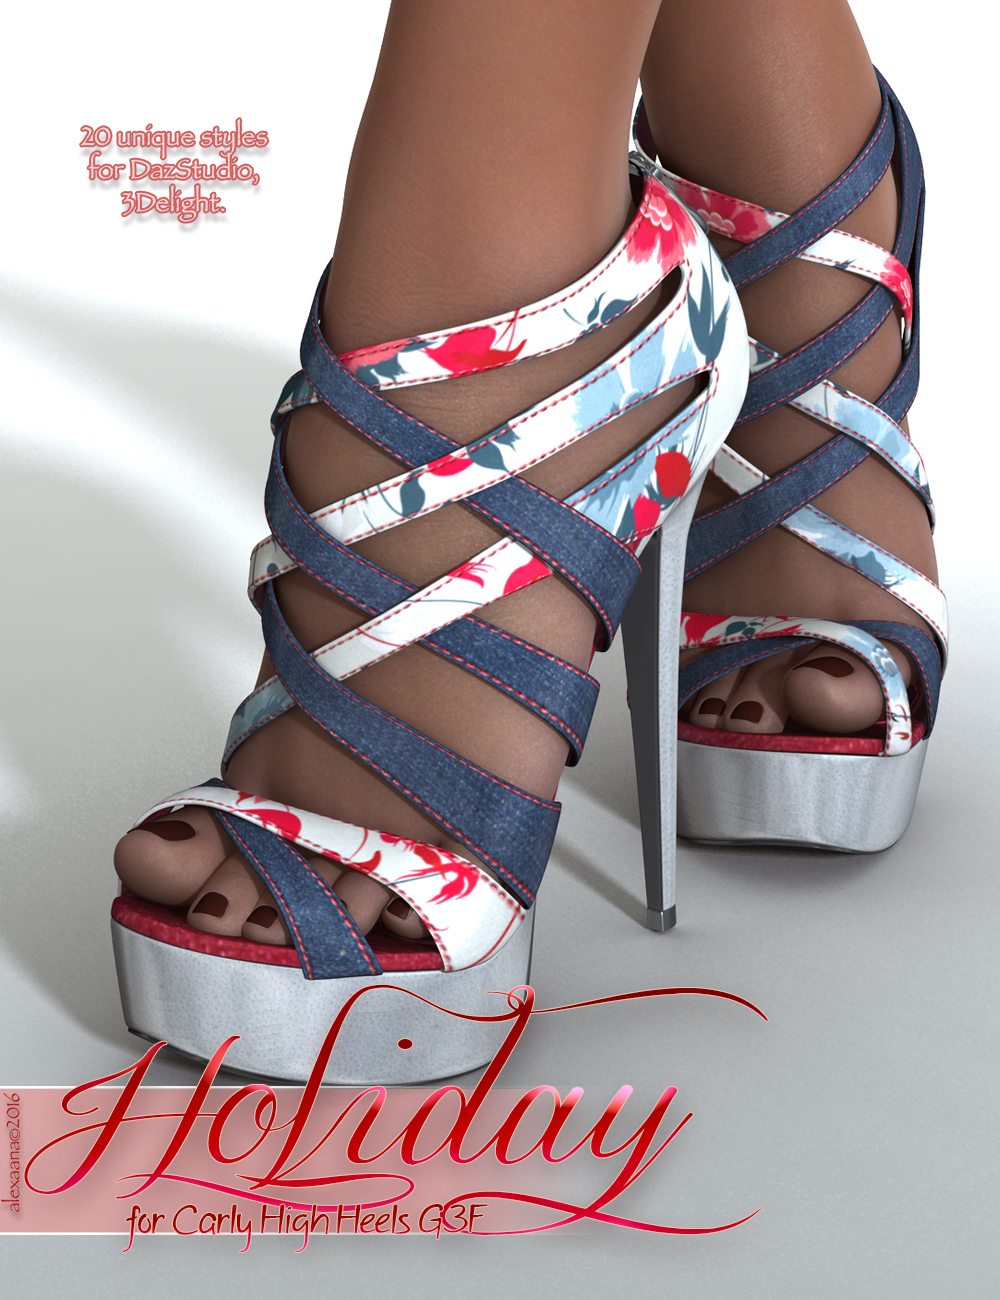 Holiday for carly G3F